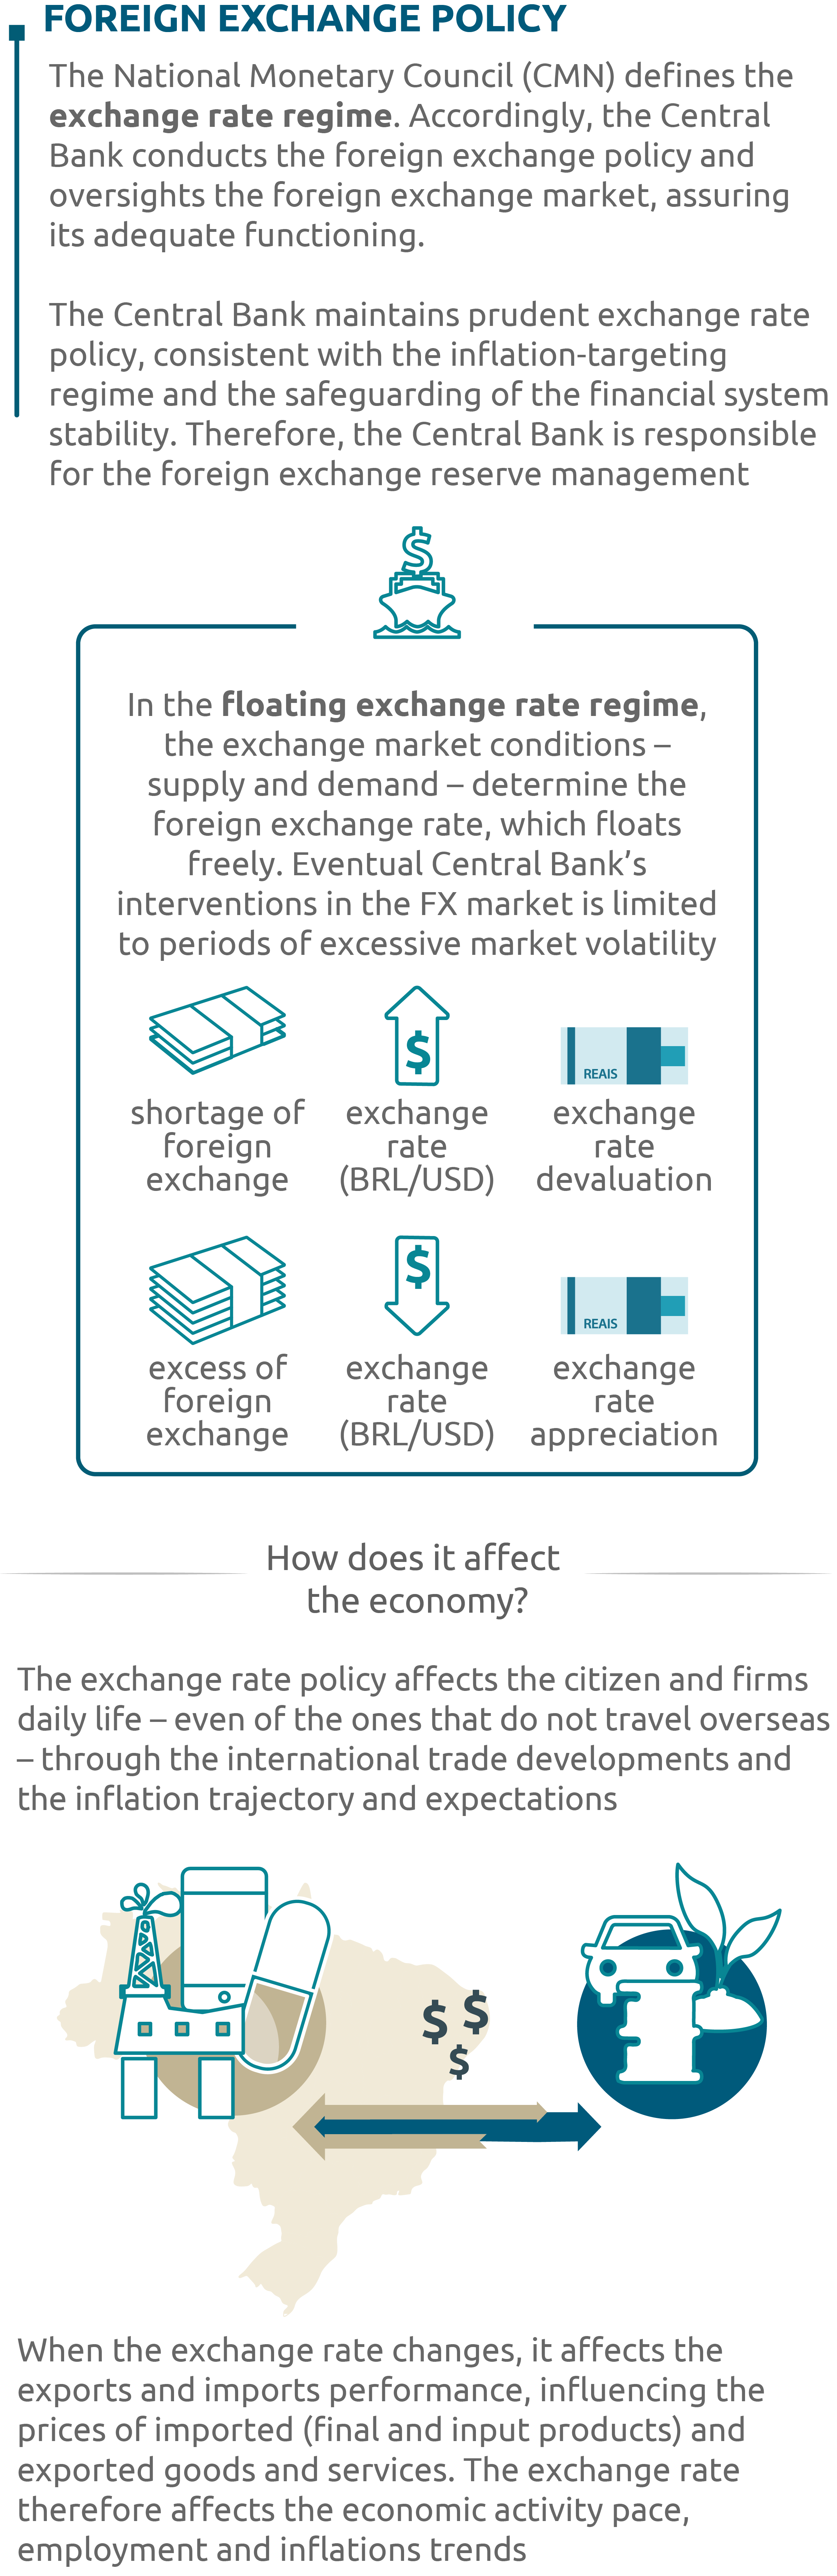 Foreign exchange policy